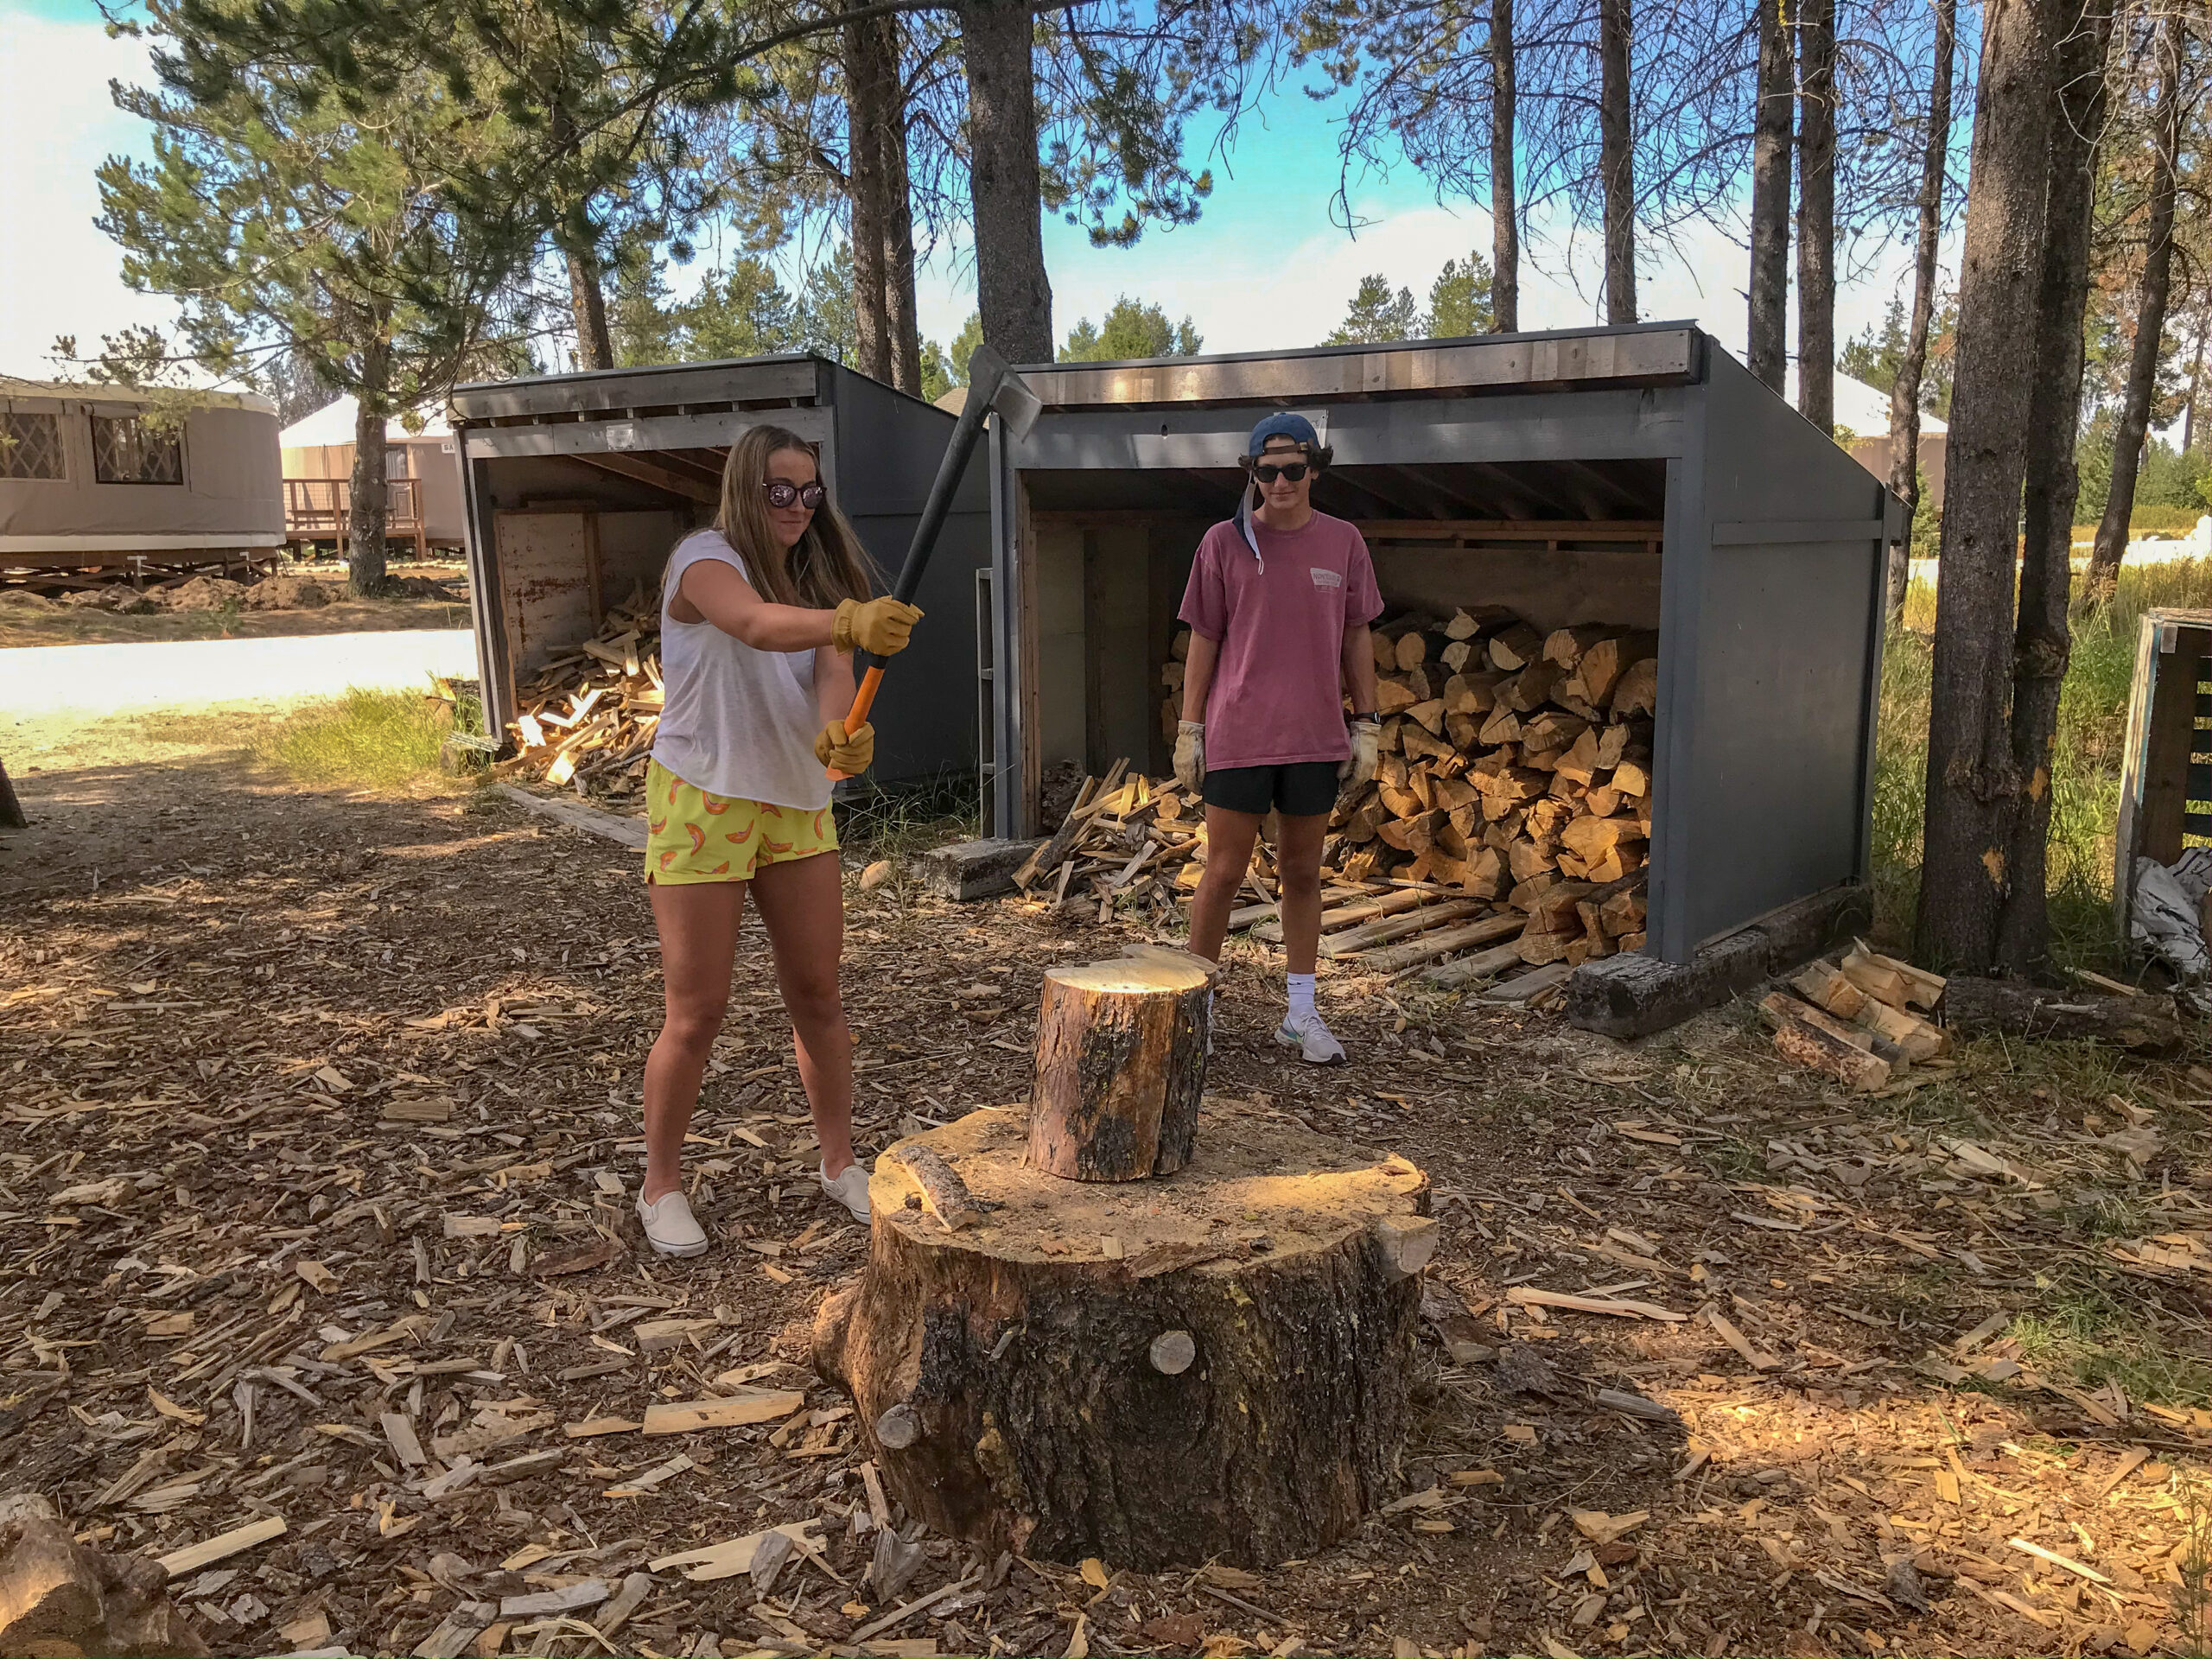 Wood Chopping With a Purpose